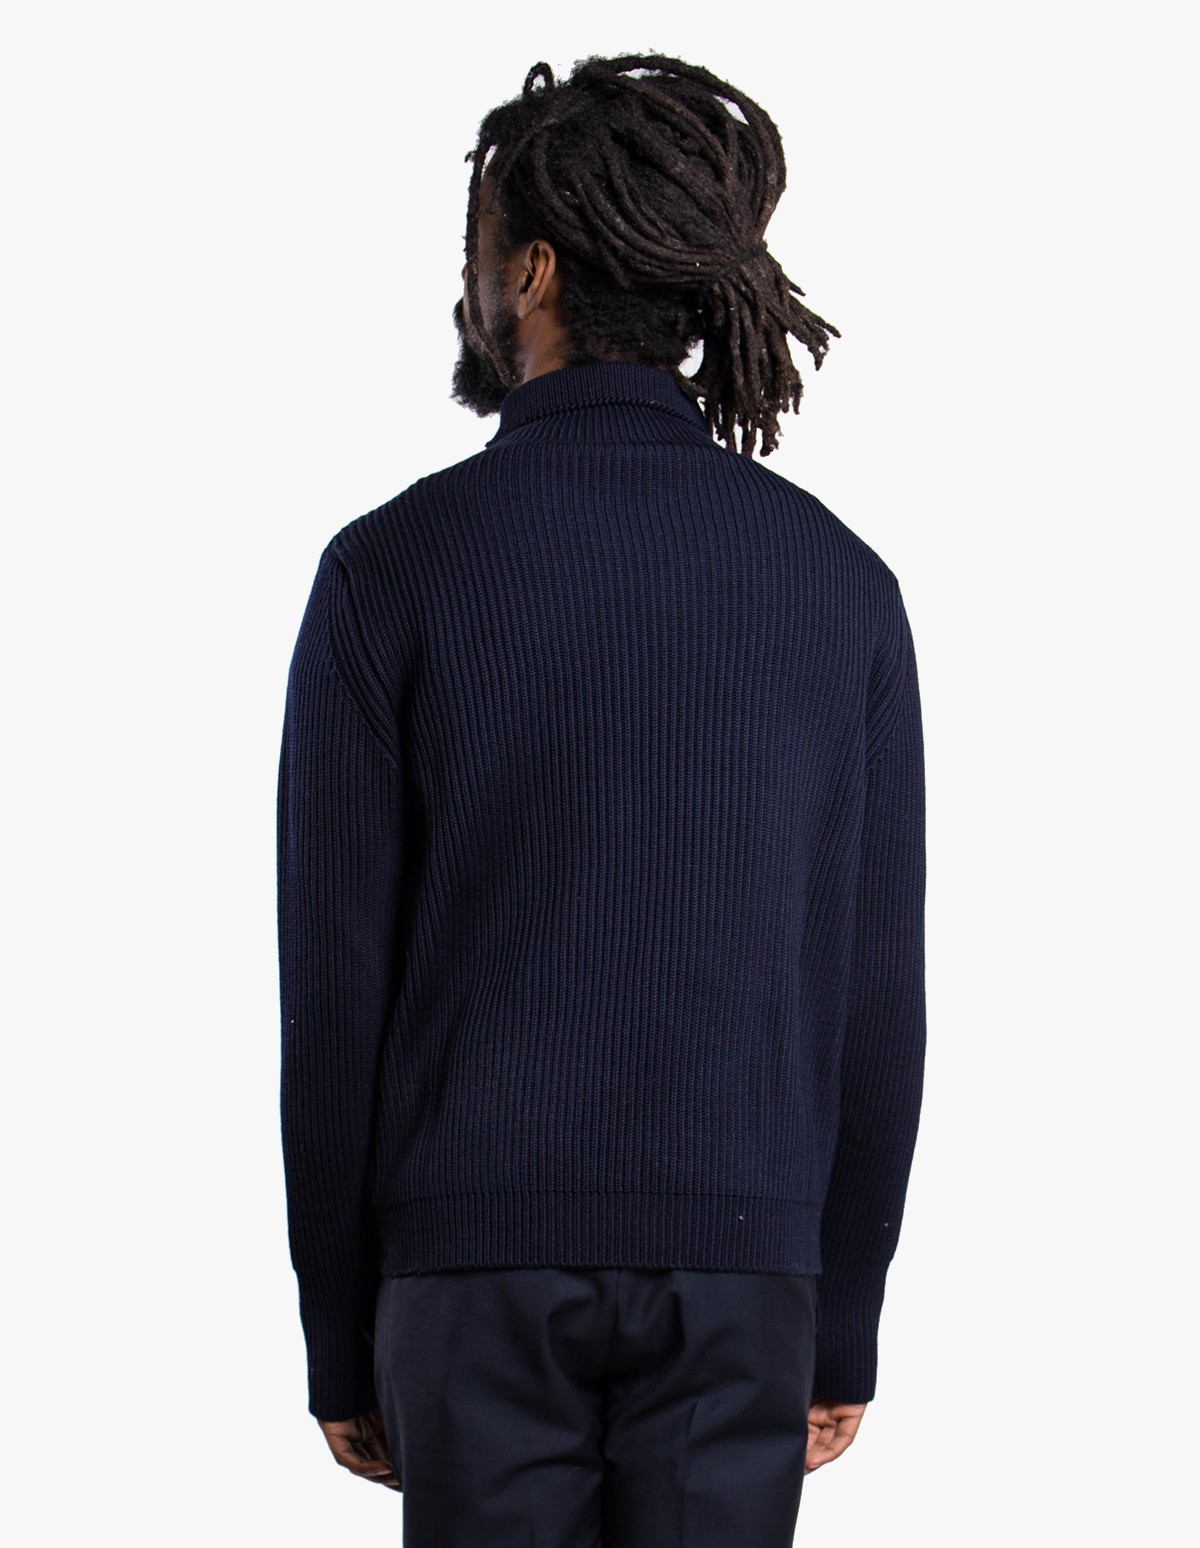 Andersen-Andersen Navy Turtleneck Symmetrical in Navy Blue